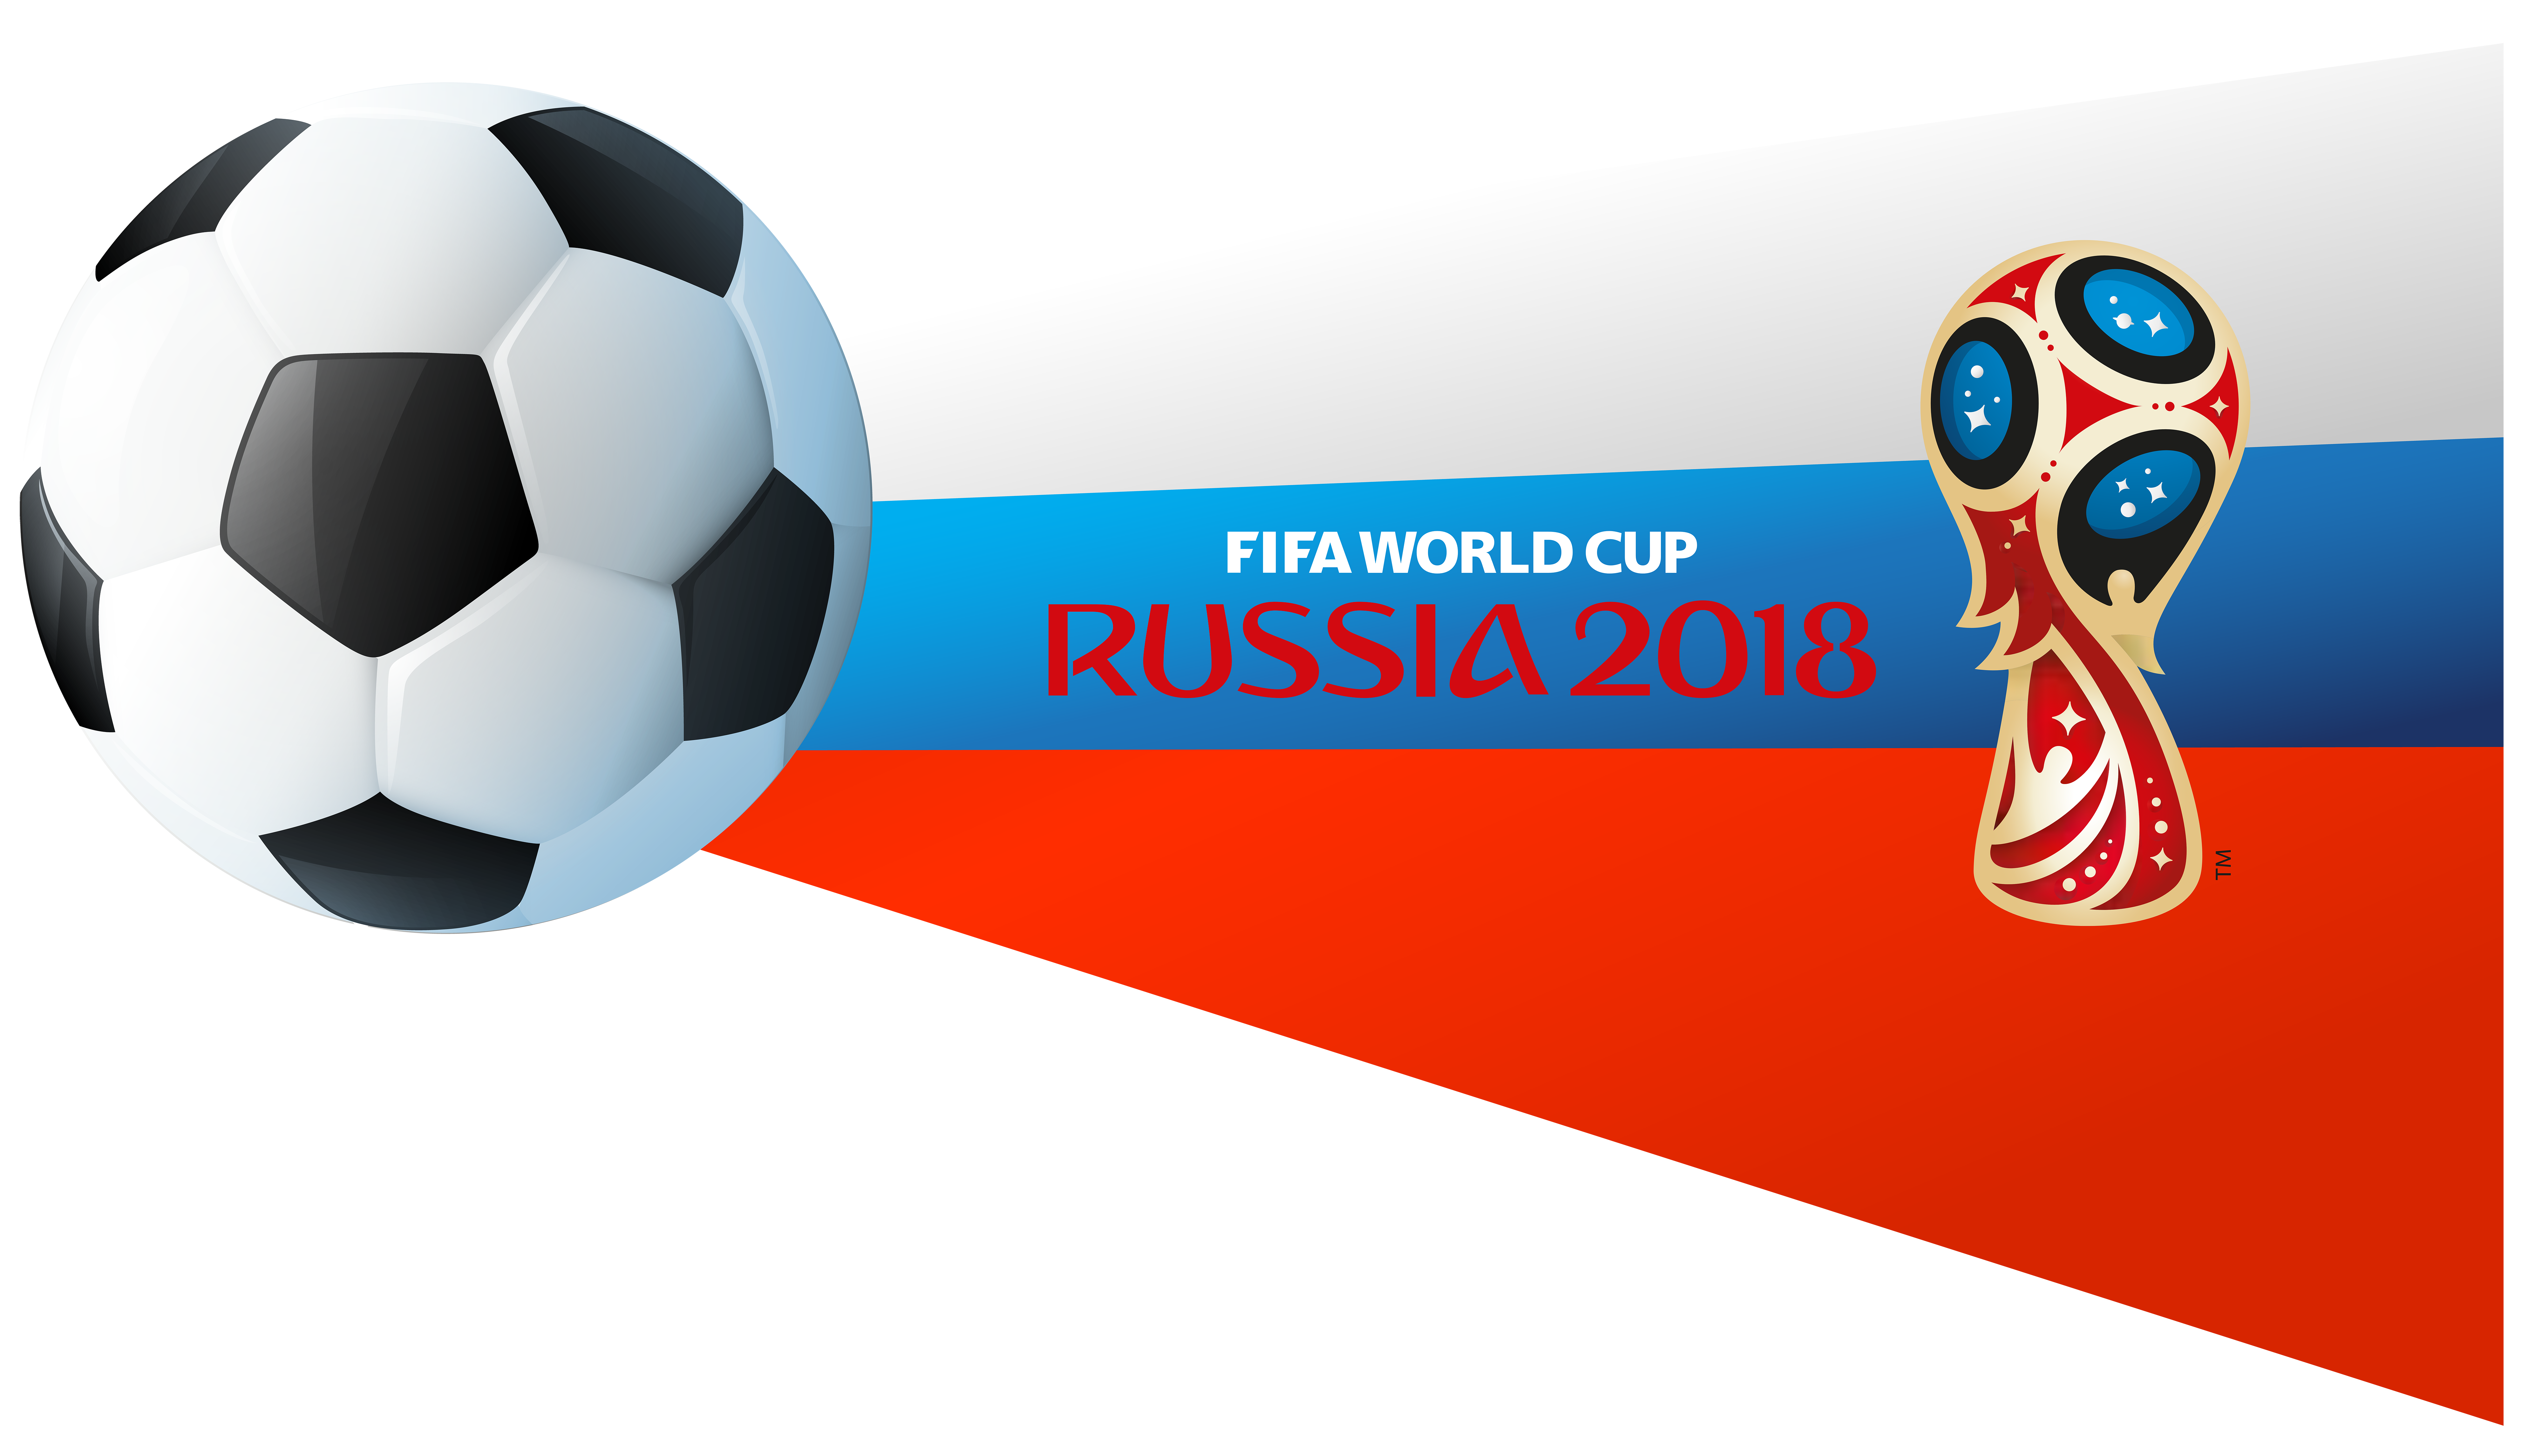 FIFA World Cup Russia 2018 Wallpapers.